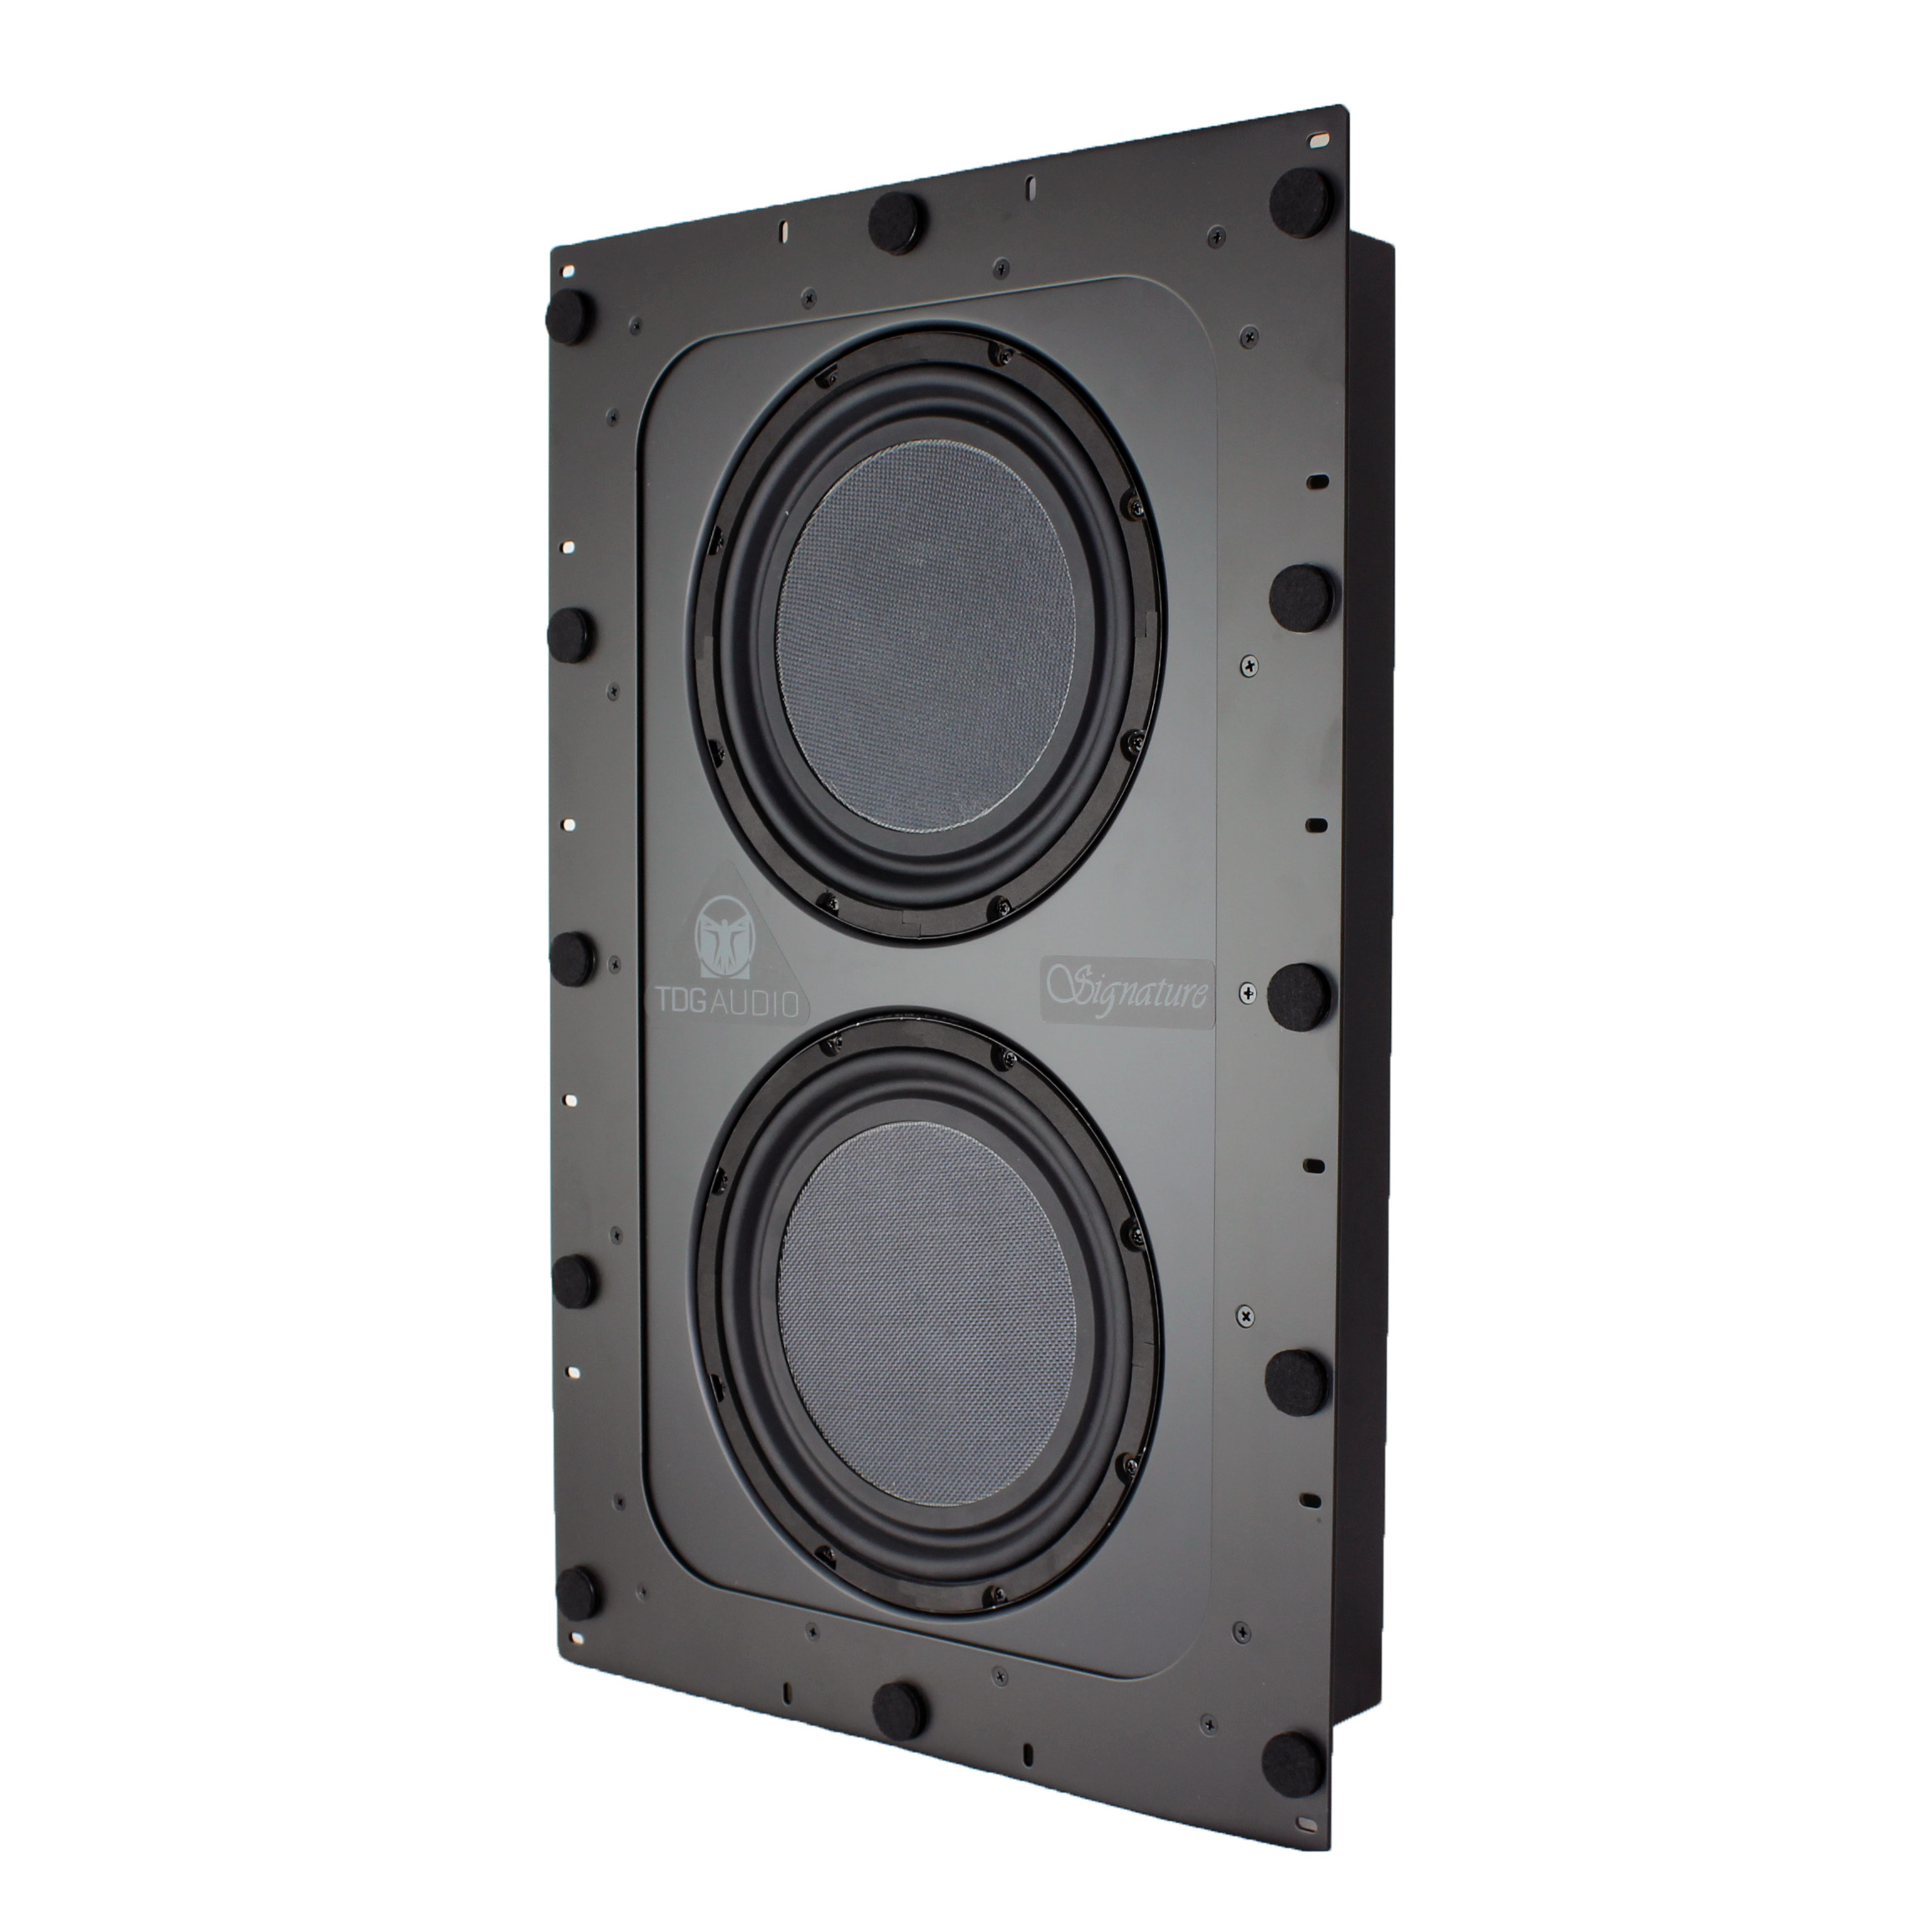 In Wall Subwoofer >> Signature Series Iws 210 Dual 10 In Wall Subwoofer The Davinci Group